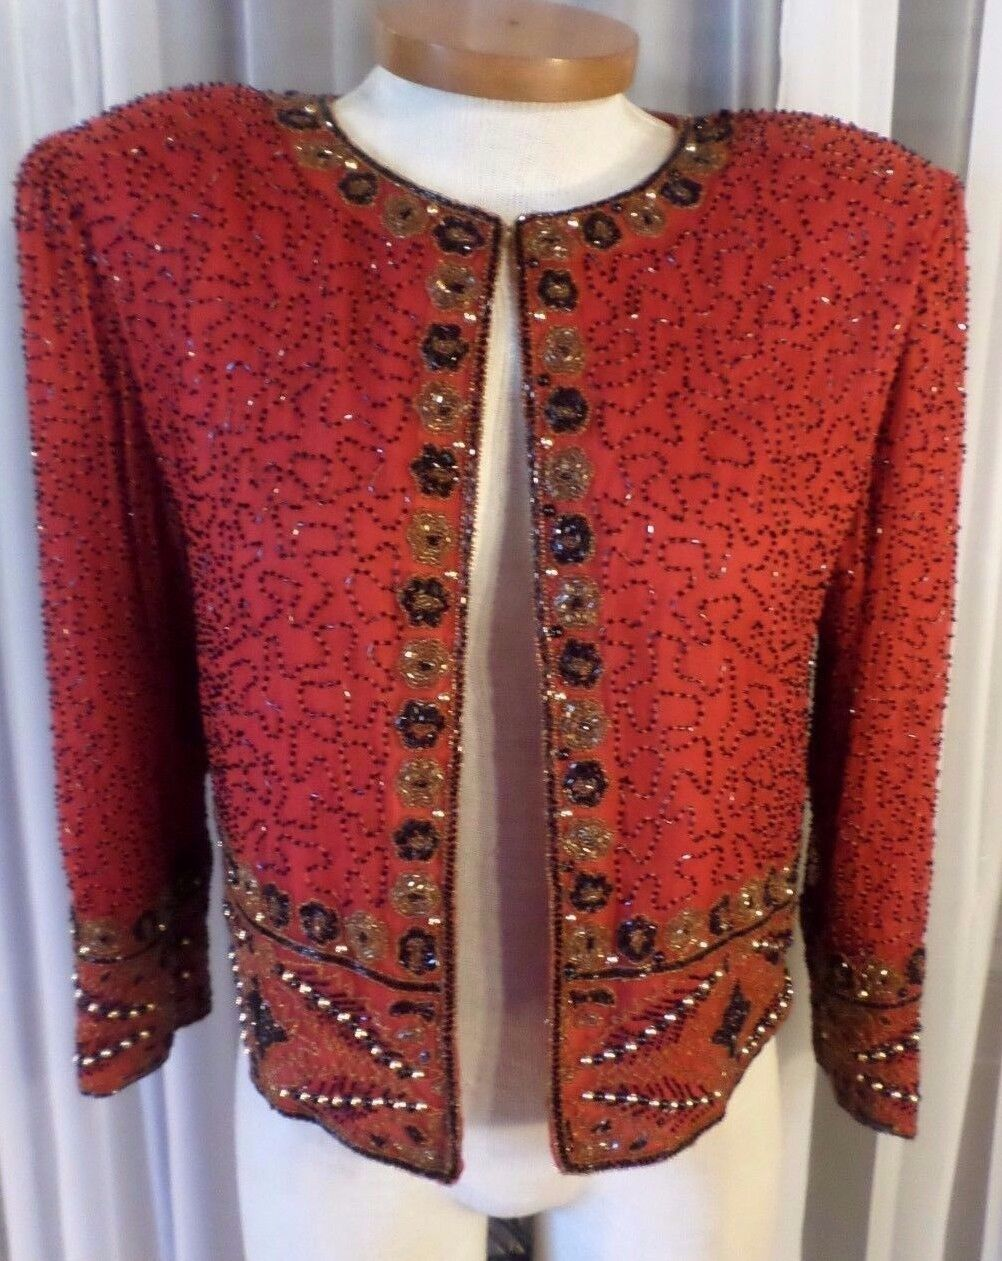 NEW schwarz rot Gold Medium Silk Beaded Sequin Lady Woman Top Jacket M 8 Lined MED